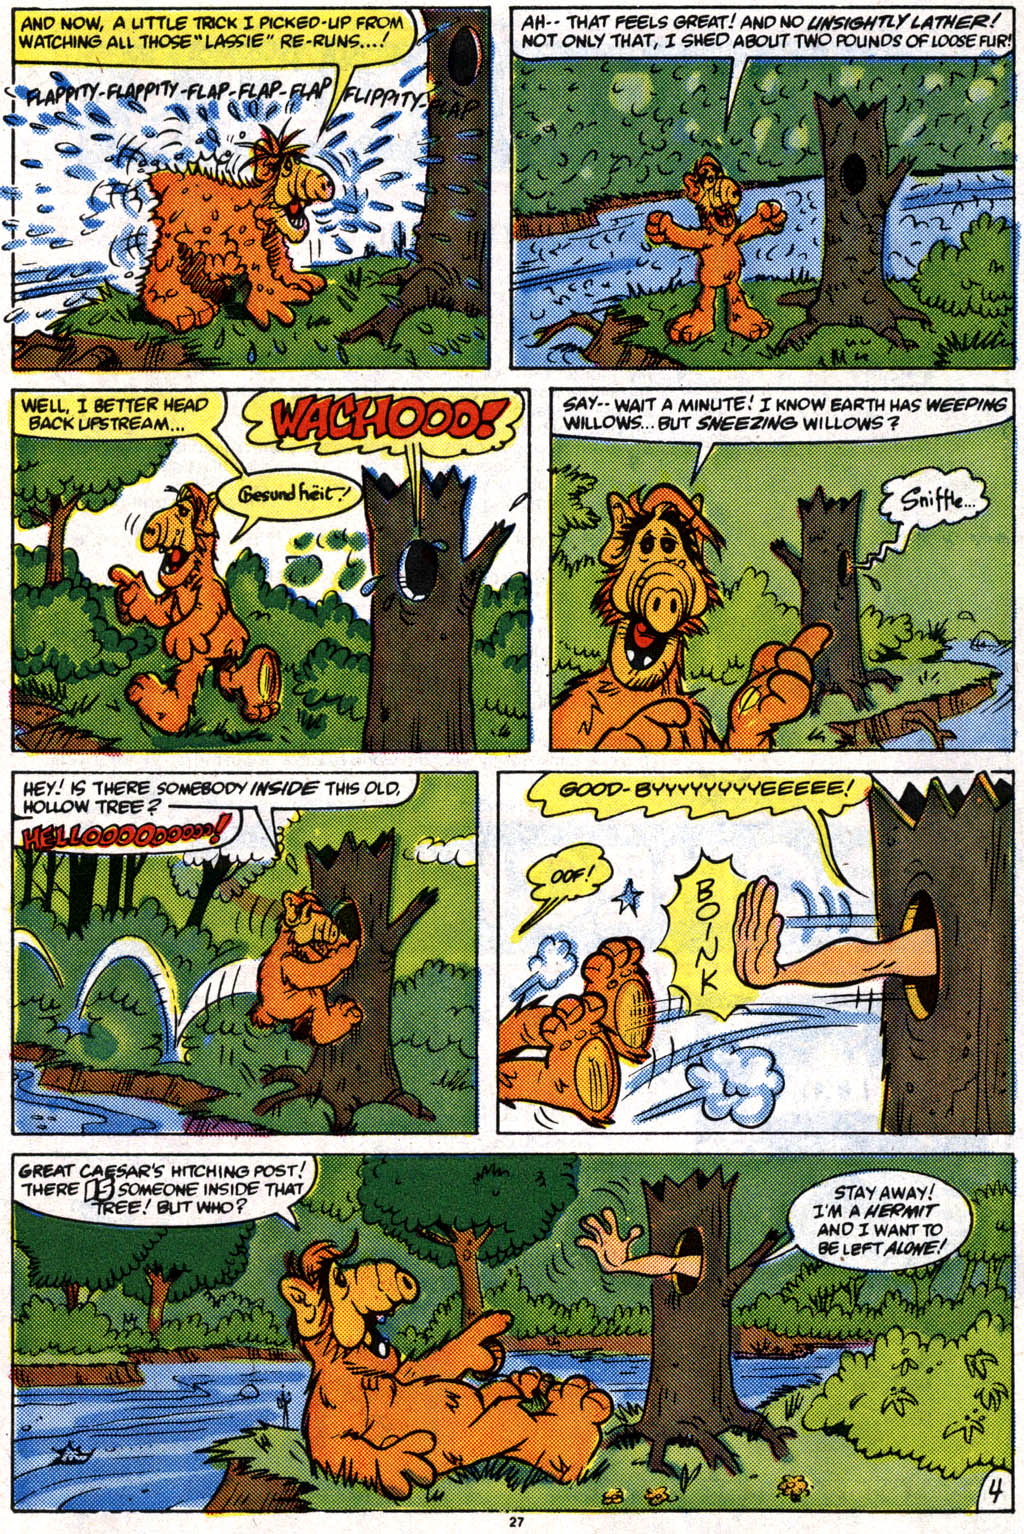 Read online ALF comic -  Issue #10 - 20